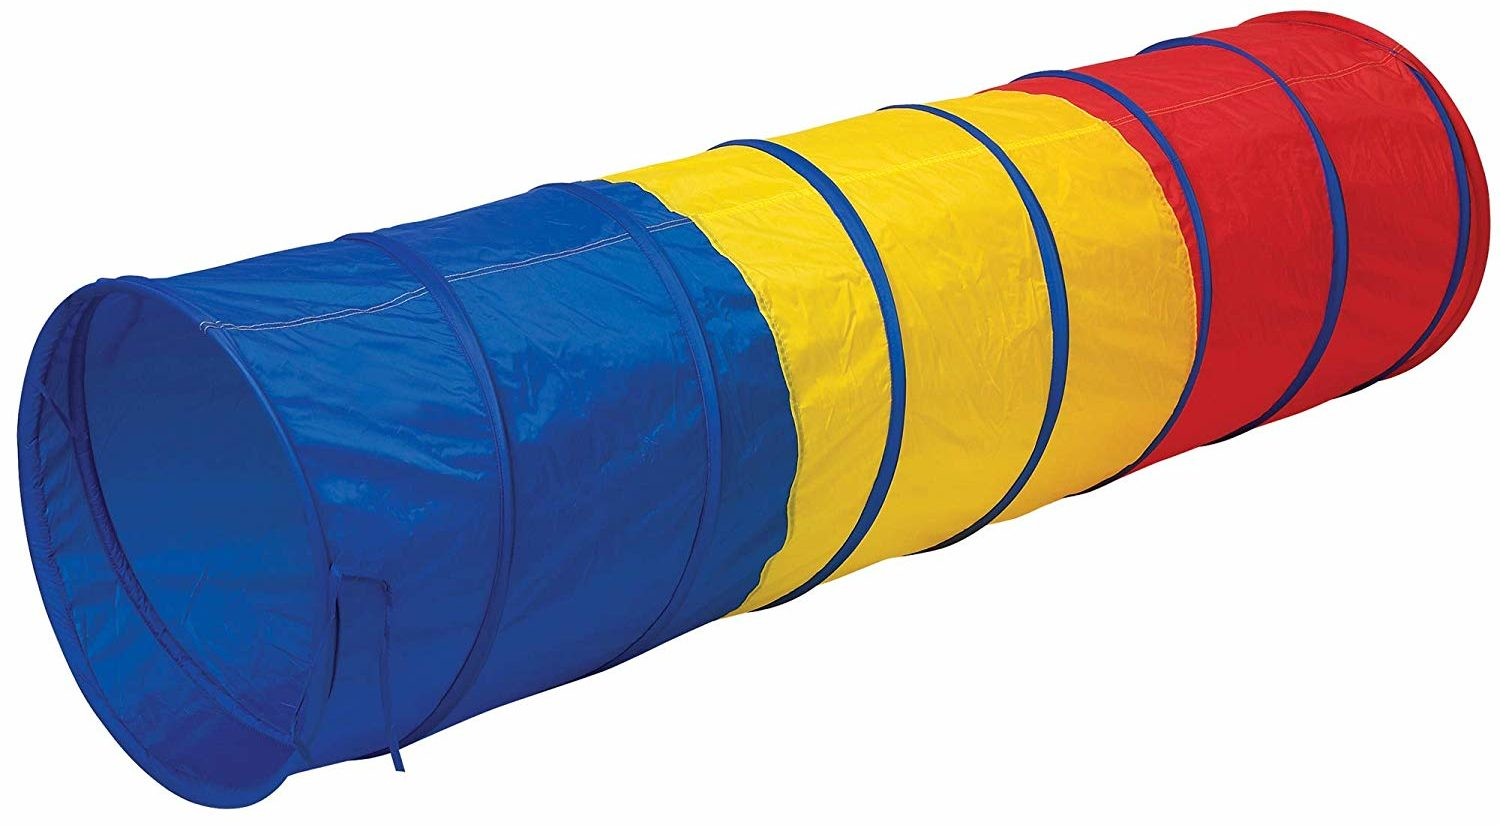 """best toys for a one-year play tent """"width ="""" 450 """"height ="""" 248 """"srcset ="""" https: //www.top5. com / wp-content /uploads/2013/06/best-toys-for-a-one-old-play-tent-e1557253653496.jpg 1500w, https://www.top5.com/wp-content/uploads/2013 / 06 / best-toys-for-a-one-year-old-play-tent-e1557253653496-300x165.jpg 300w, https://www.top5.com/wp-content/uploads/2013/06/best- toys-for-a-one-year-old-play-tent-e1557253653496-768x422.jpg 768w, https://www.top5.com/wp-content/uploads/2013/06/best-toys-for-a -one-year-old-play-tent-e1557253653496-1024x563.jpg 1024w """"Sizes ="""" (Max Width: 450px) 100vw, 450px"""